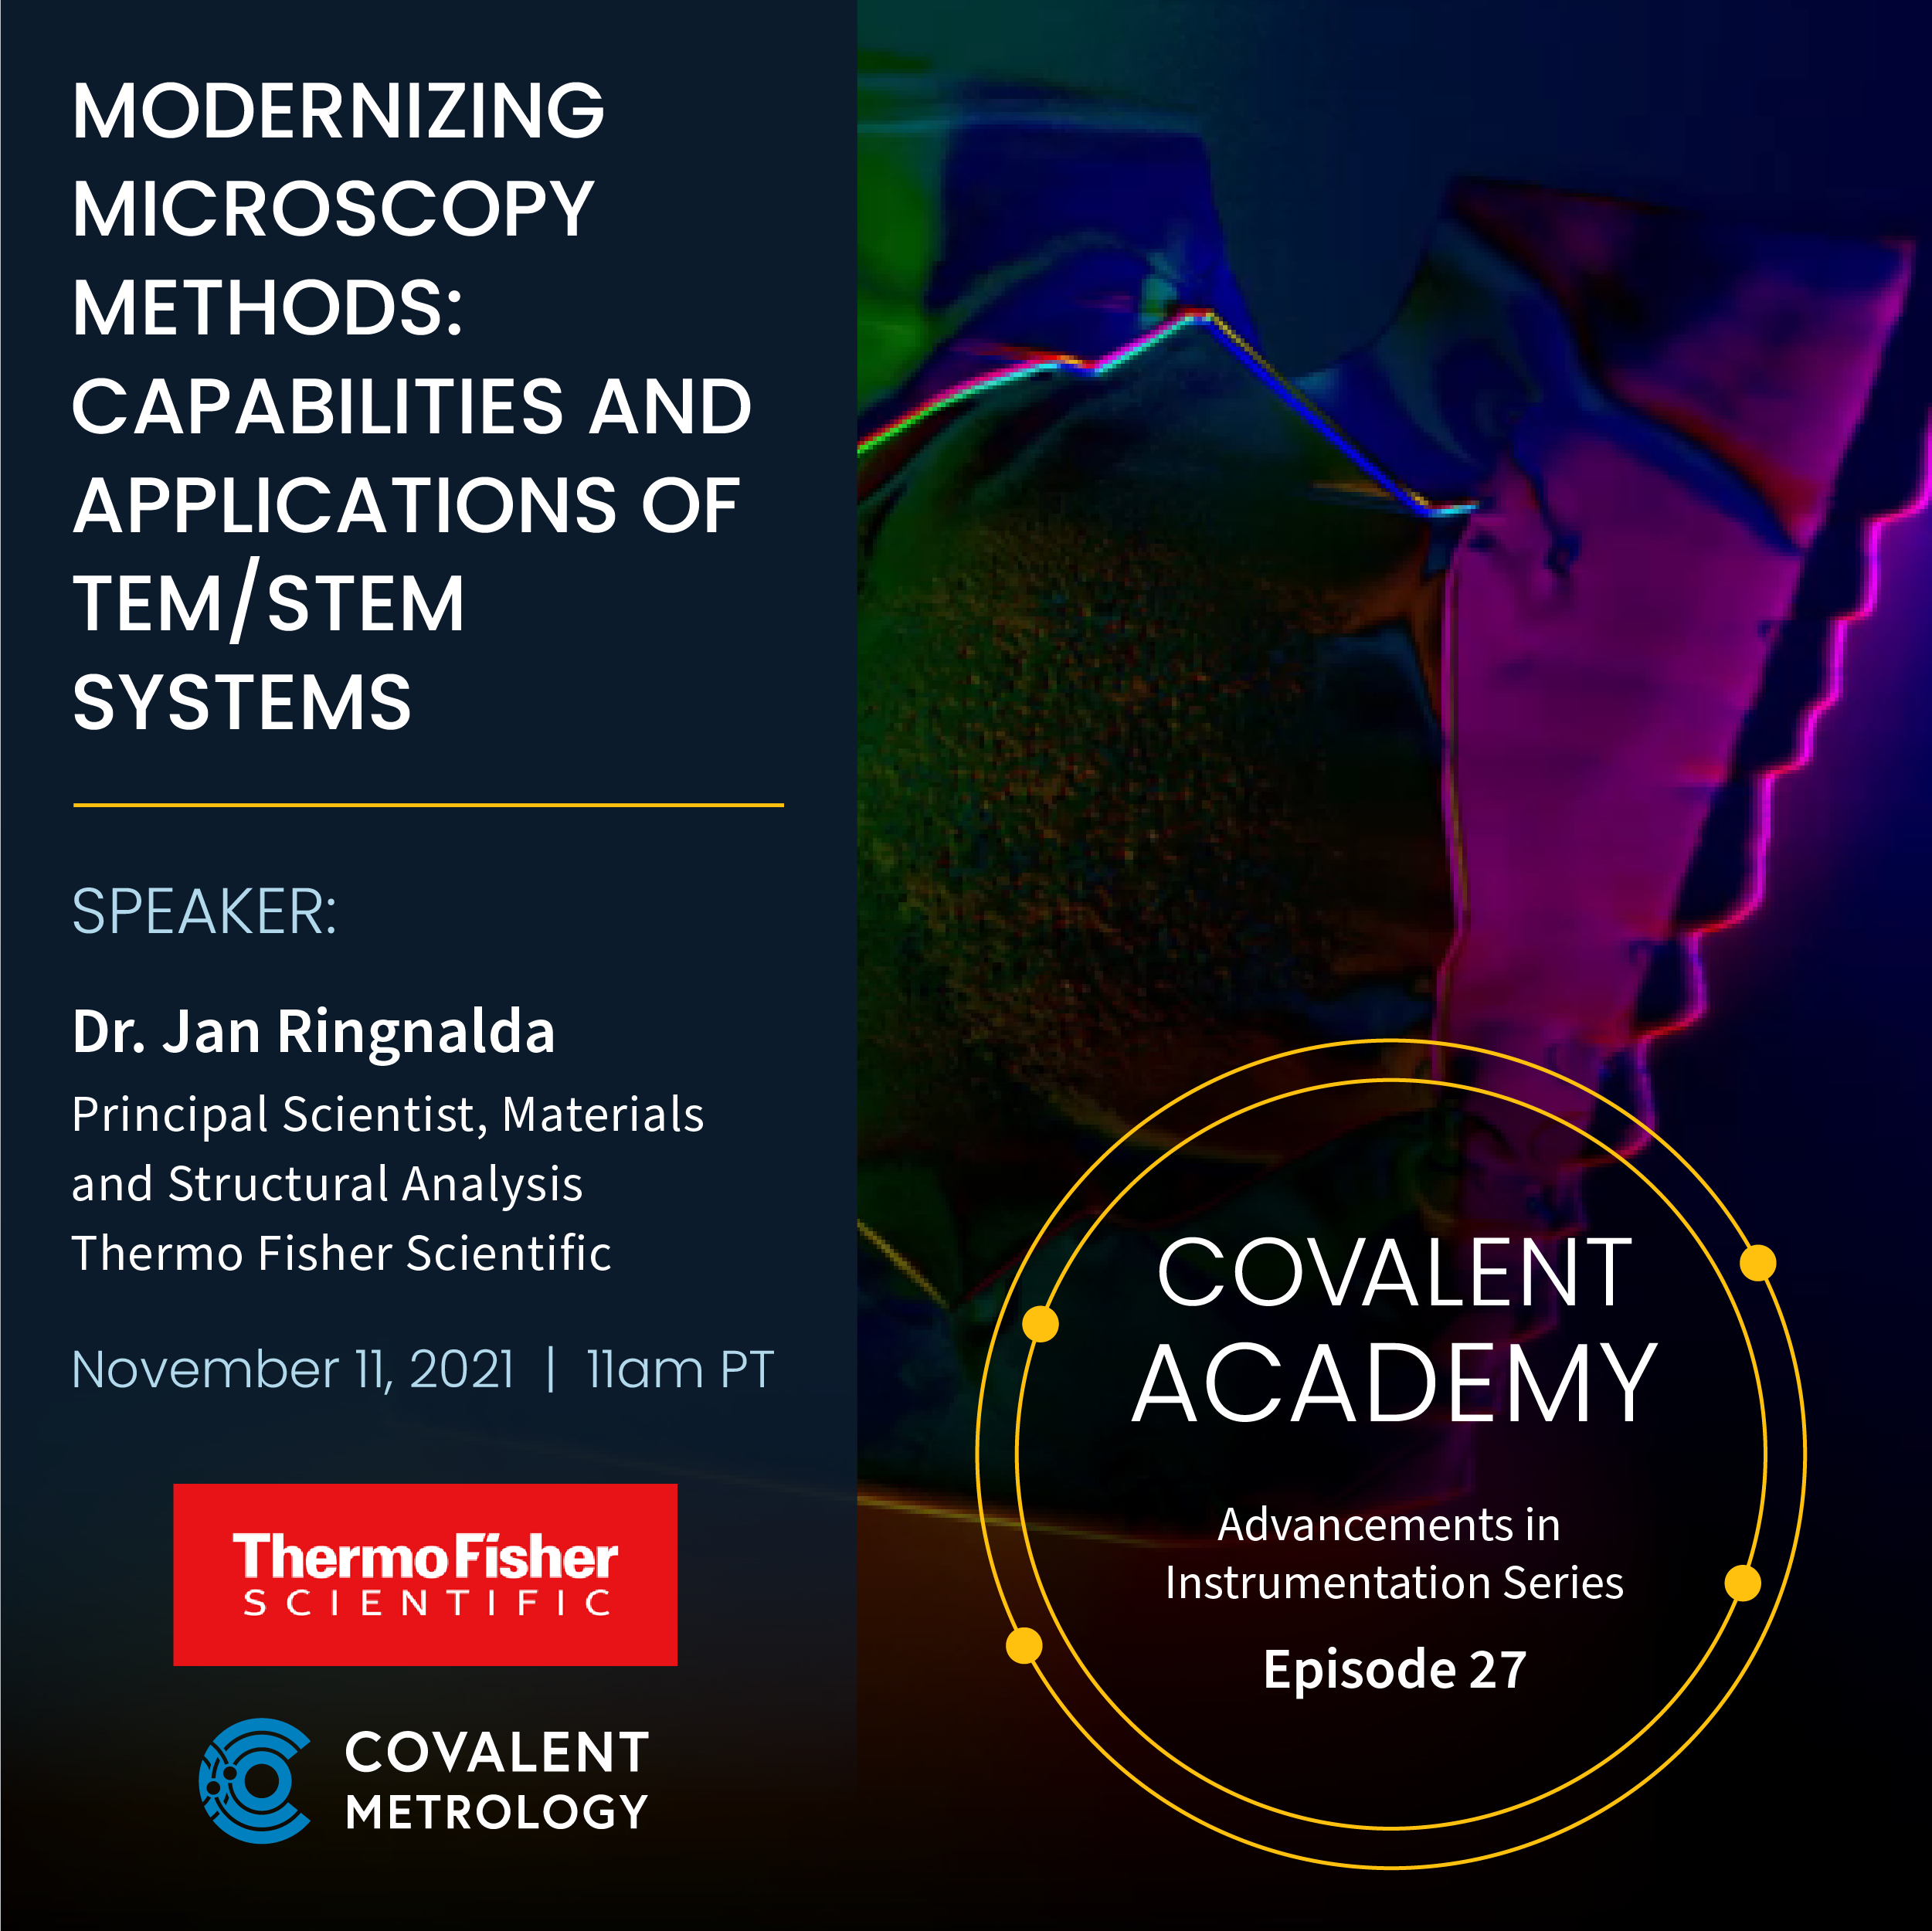 Modernizing Microscopy Methods: Capabilities and Applications of TEM/STEM Systems